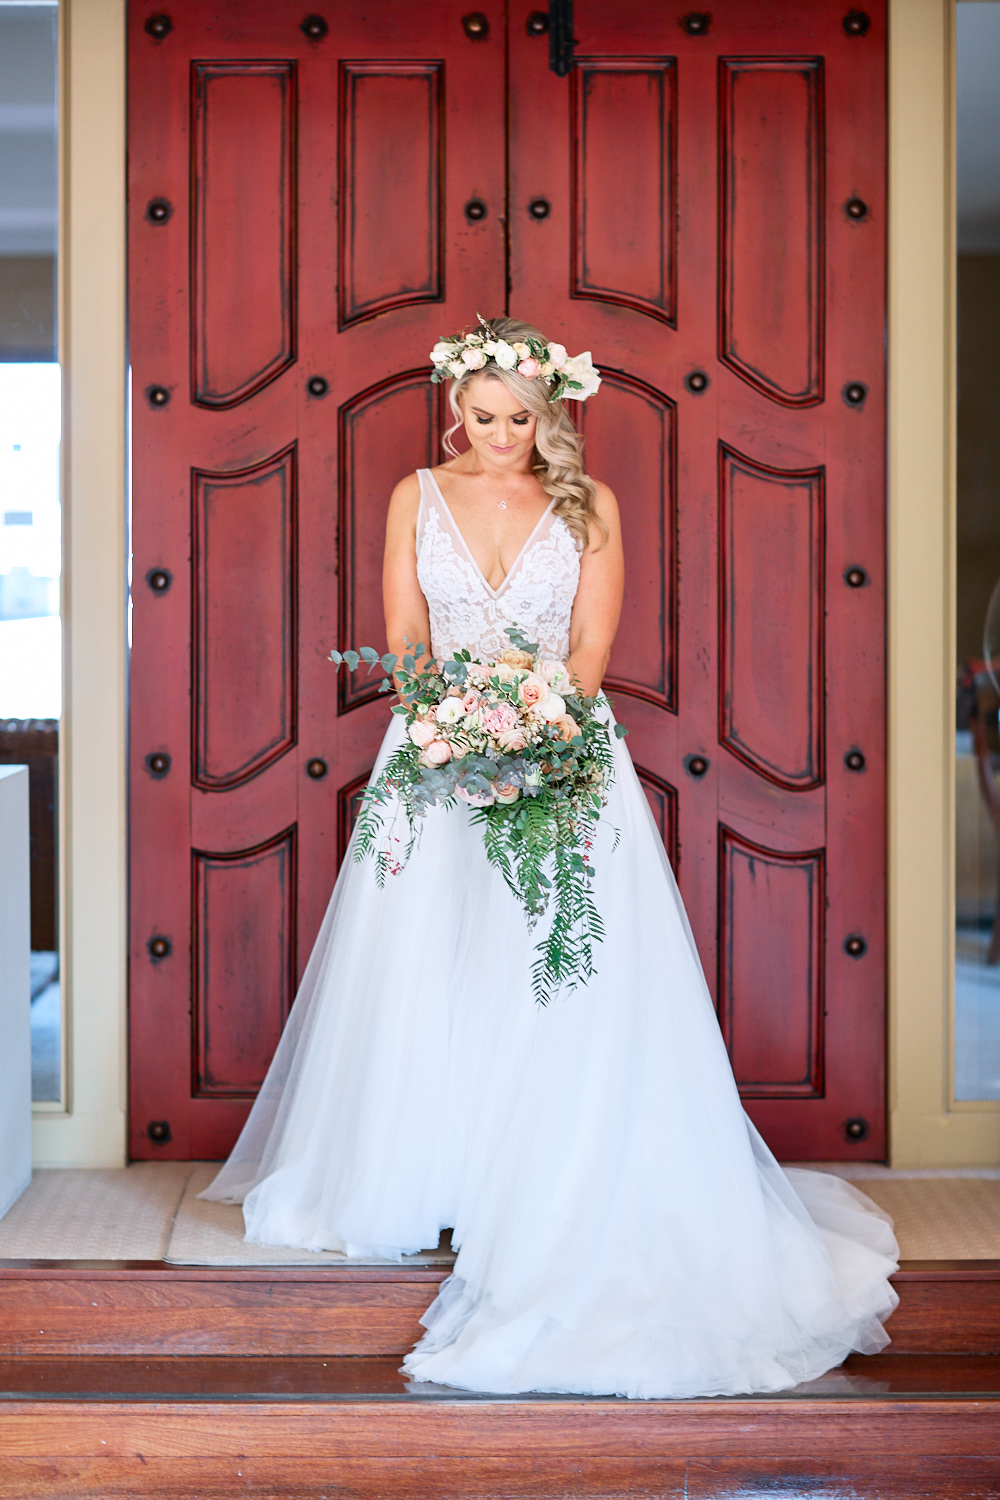 Bride wearing wedding dress in front of red door at Estate Tuscany Pokolbin in the Hunter Valley by wedding photographer Joshua Witheford